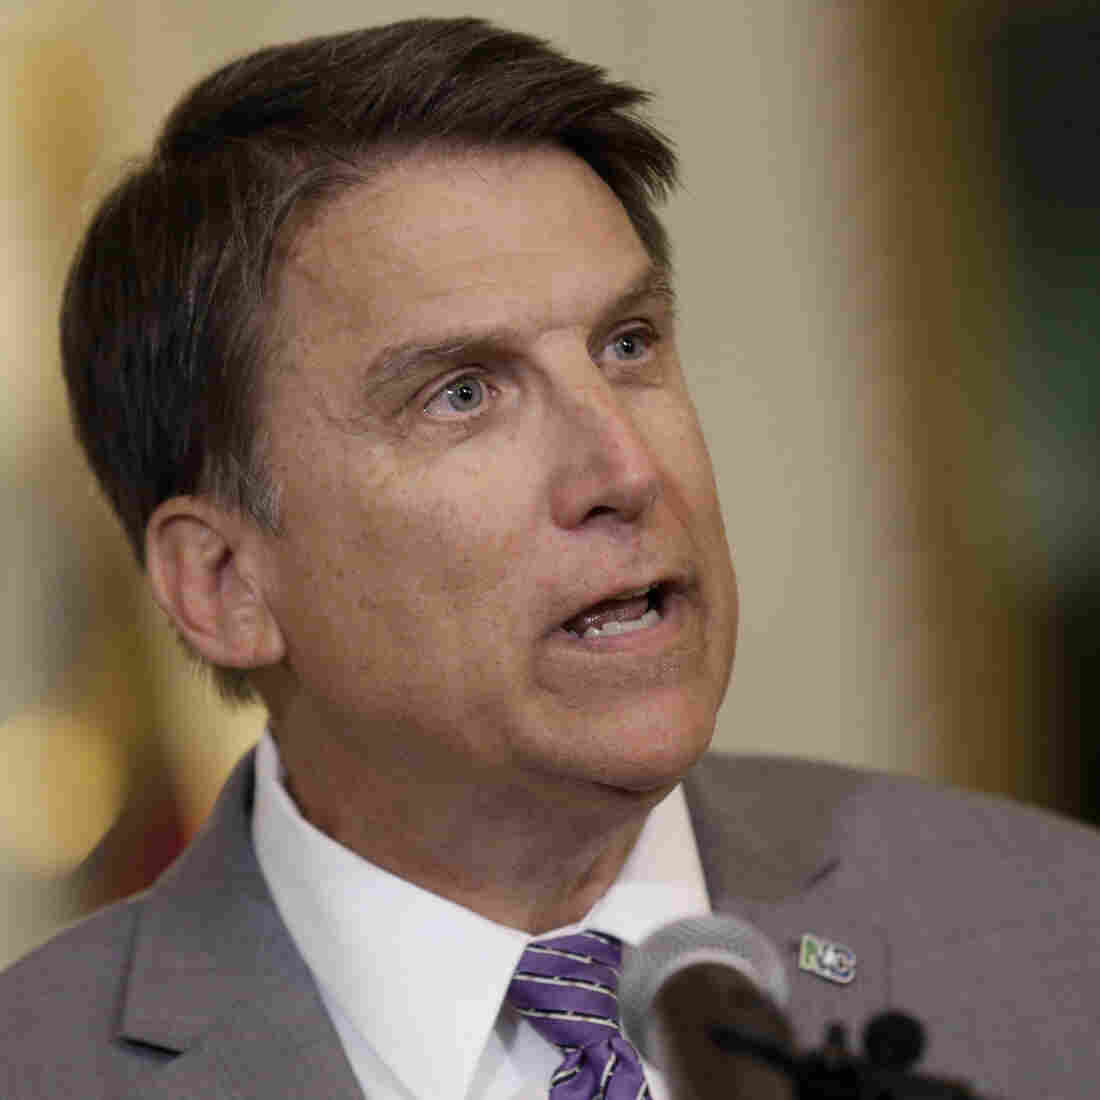 N.C. Gov. McCrory Claims 'Political Left' Fed Emergence Of Transgender Issues